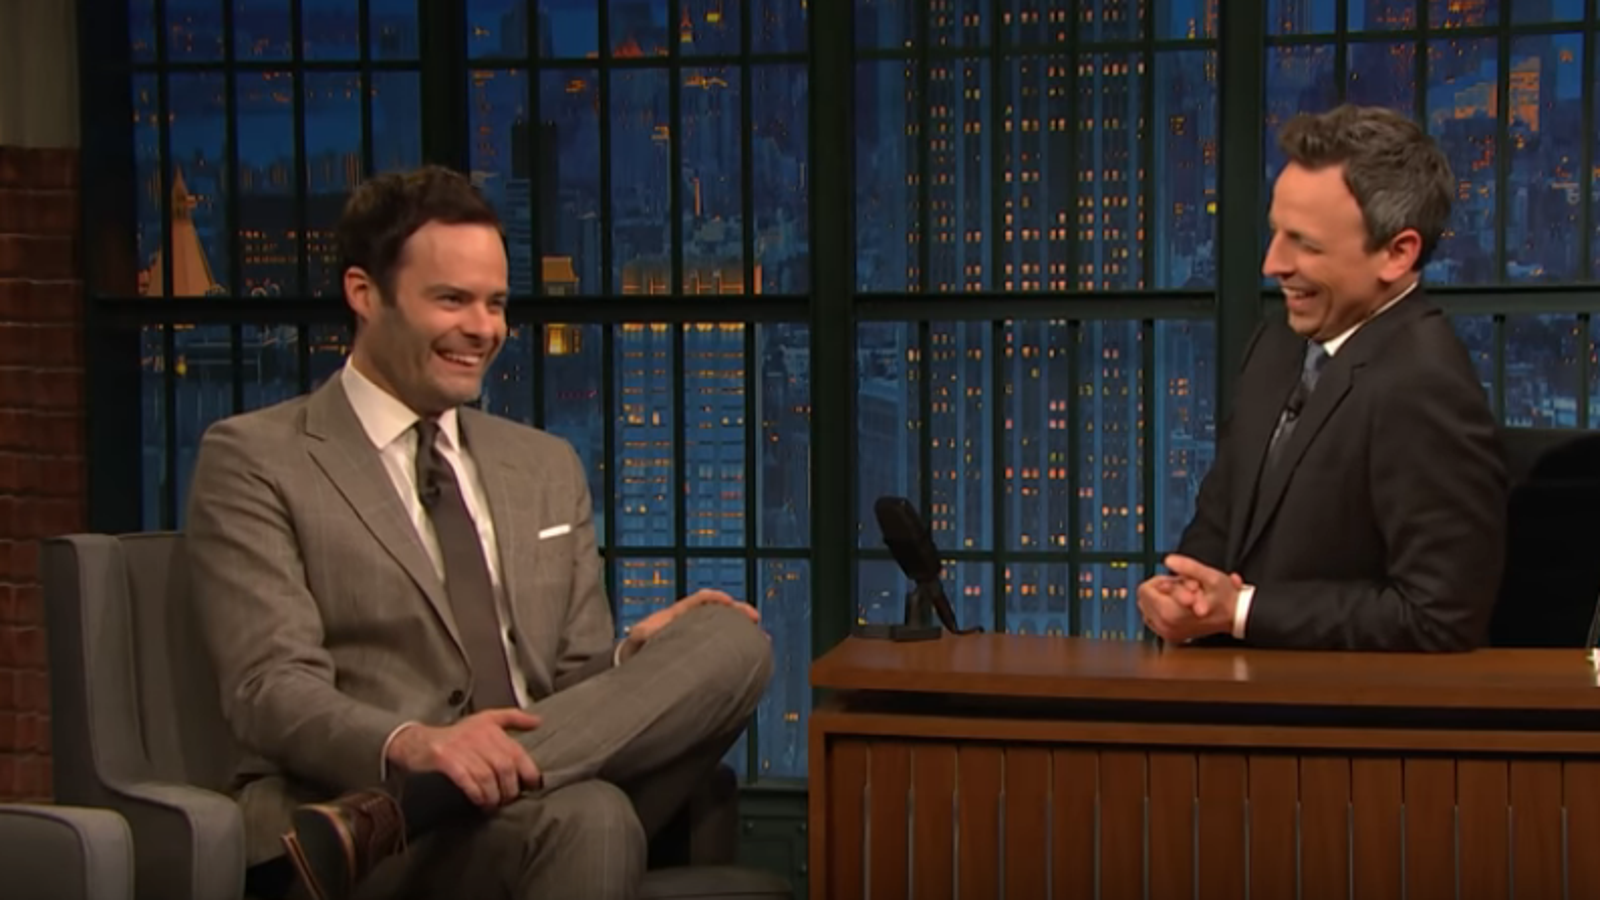 Bill Hader and Seth Meyers talk the Barry finale and getting loopy at 4 a.m. on SNL